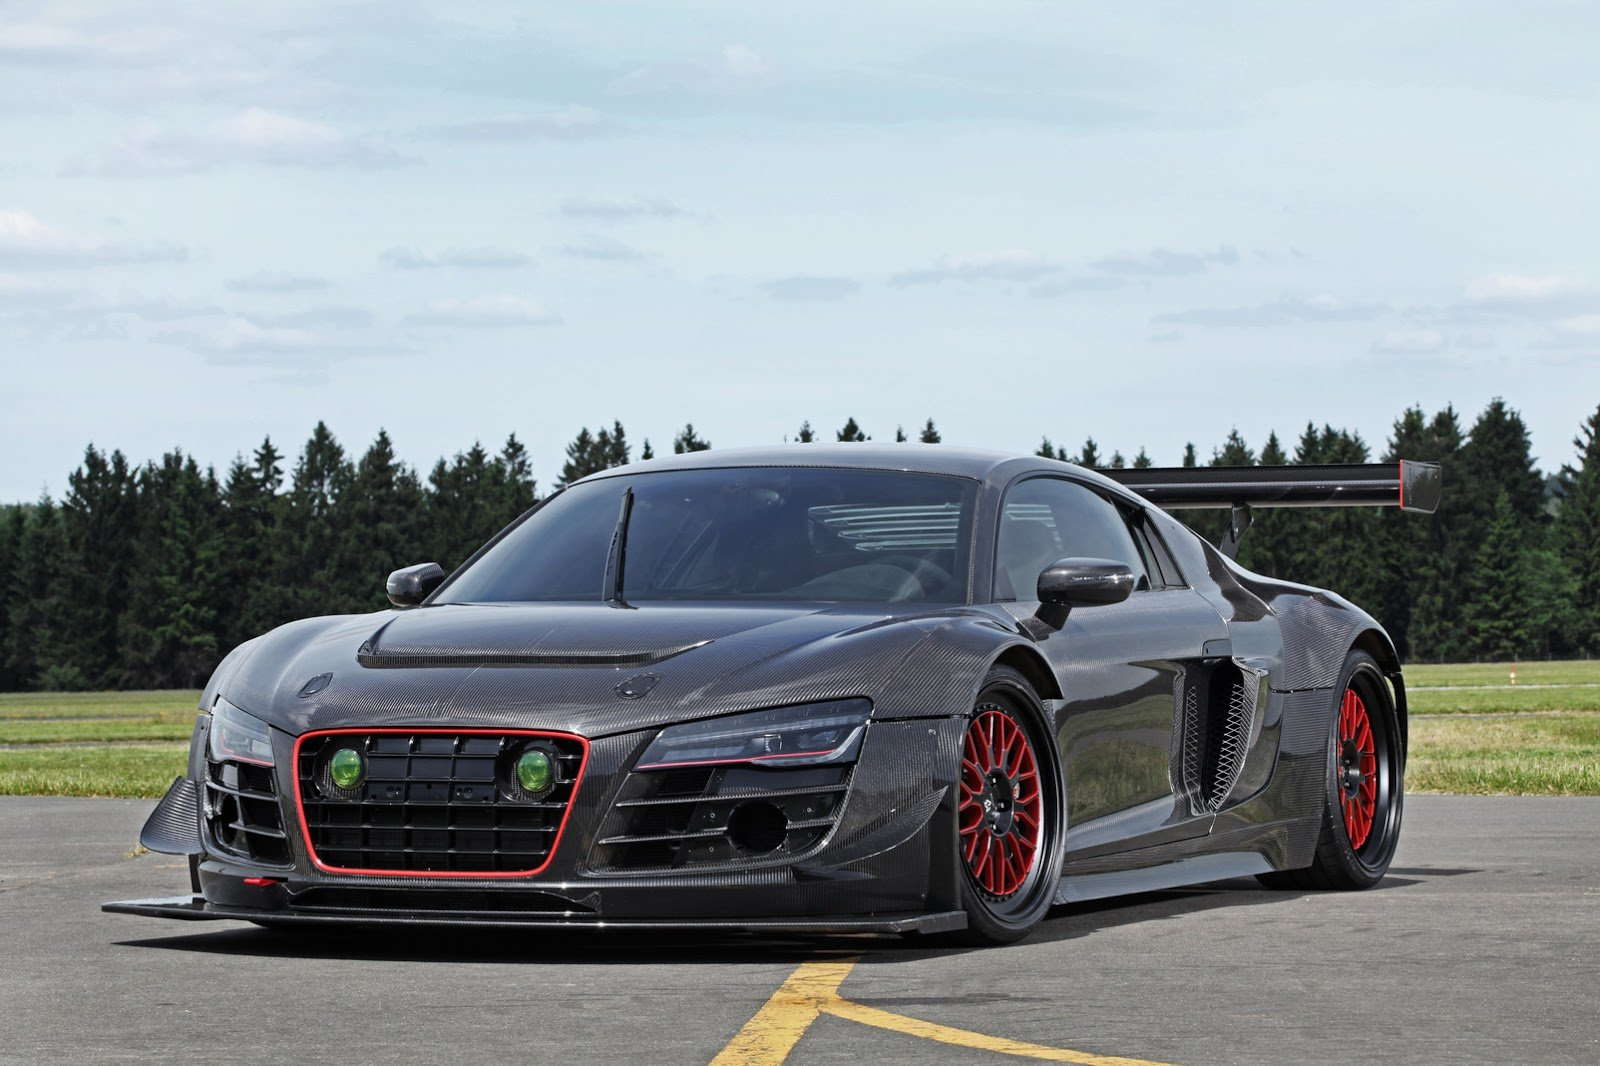 Audi R8 V10 Plus Widebody Cars Carbon Modified Wallpaper